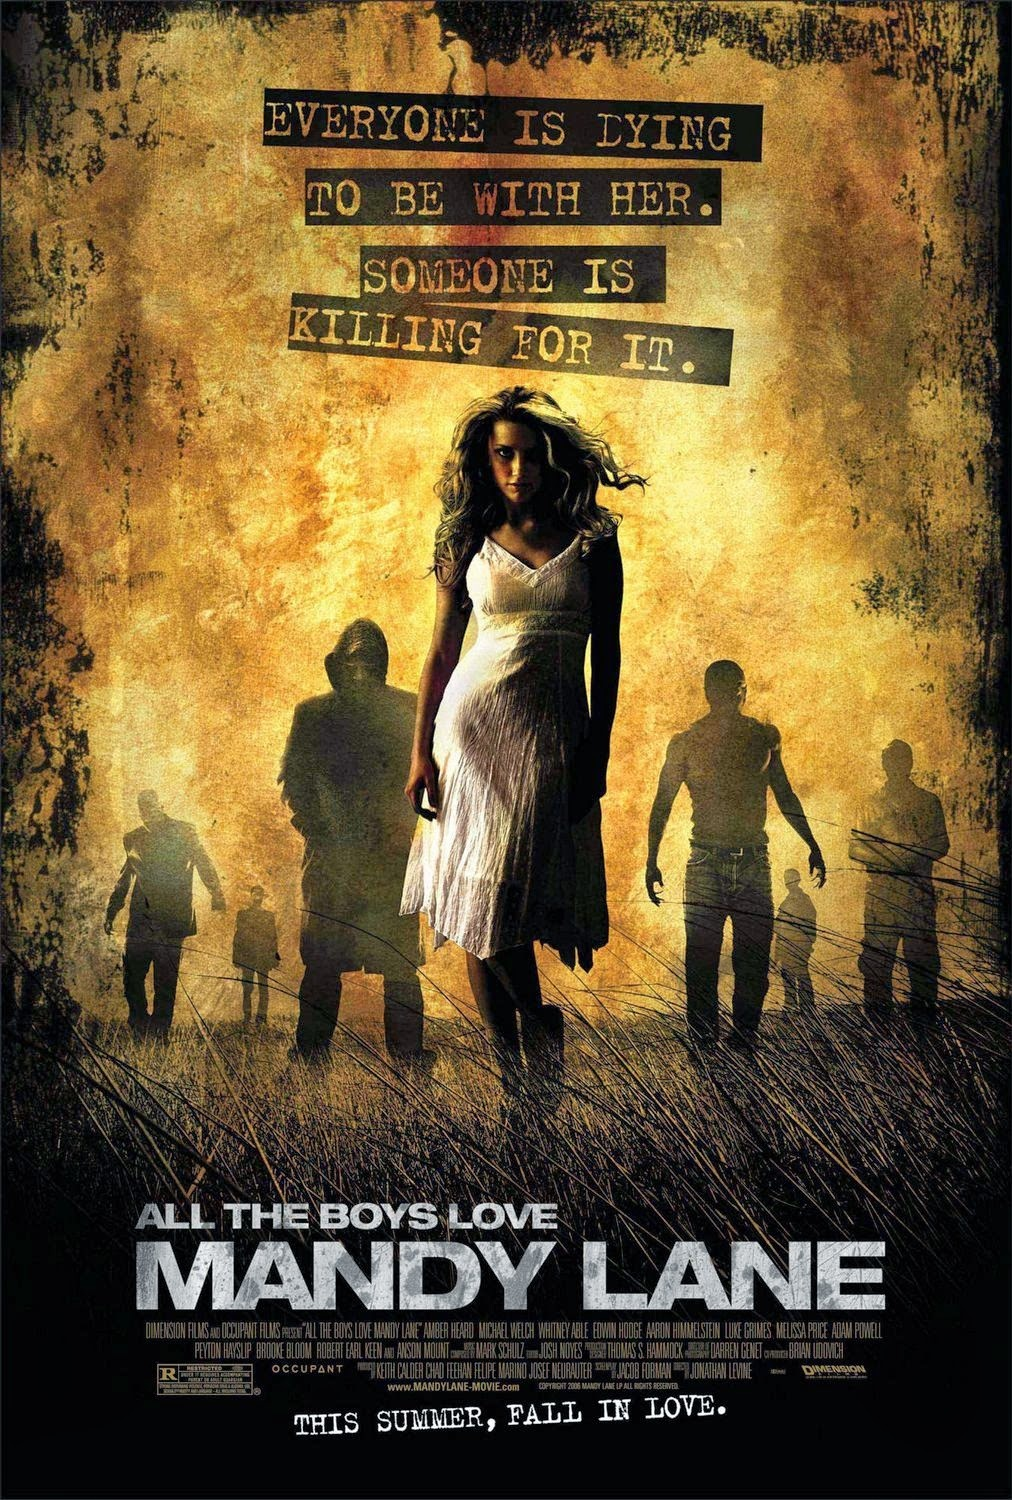 All The Boys Love Mandy Lane (Film)